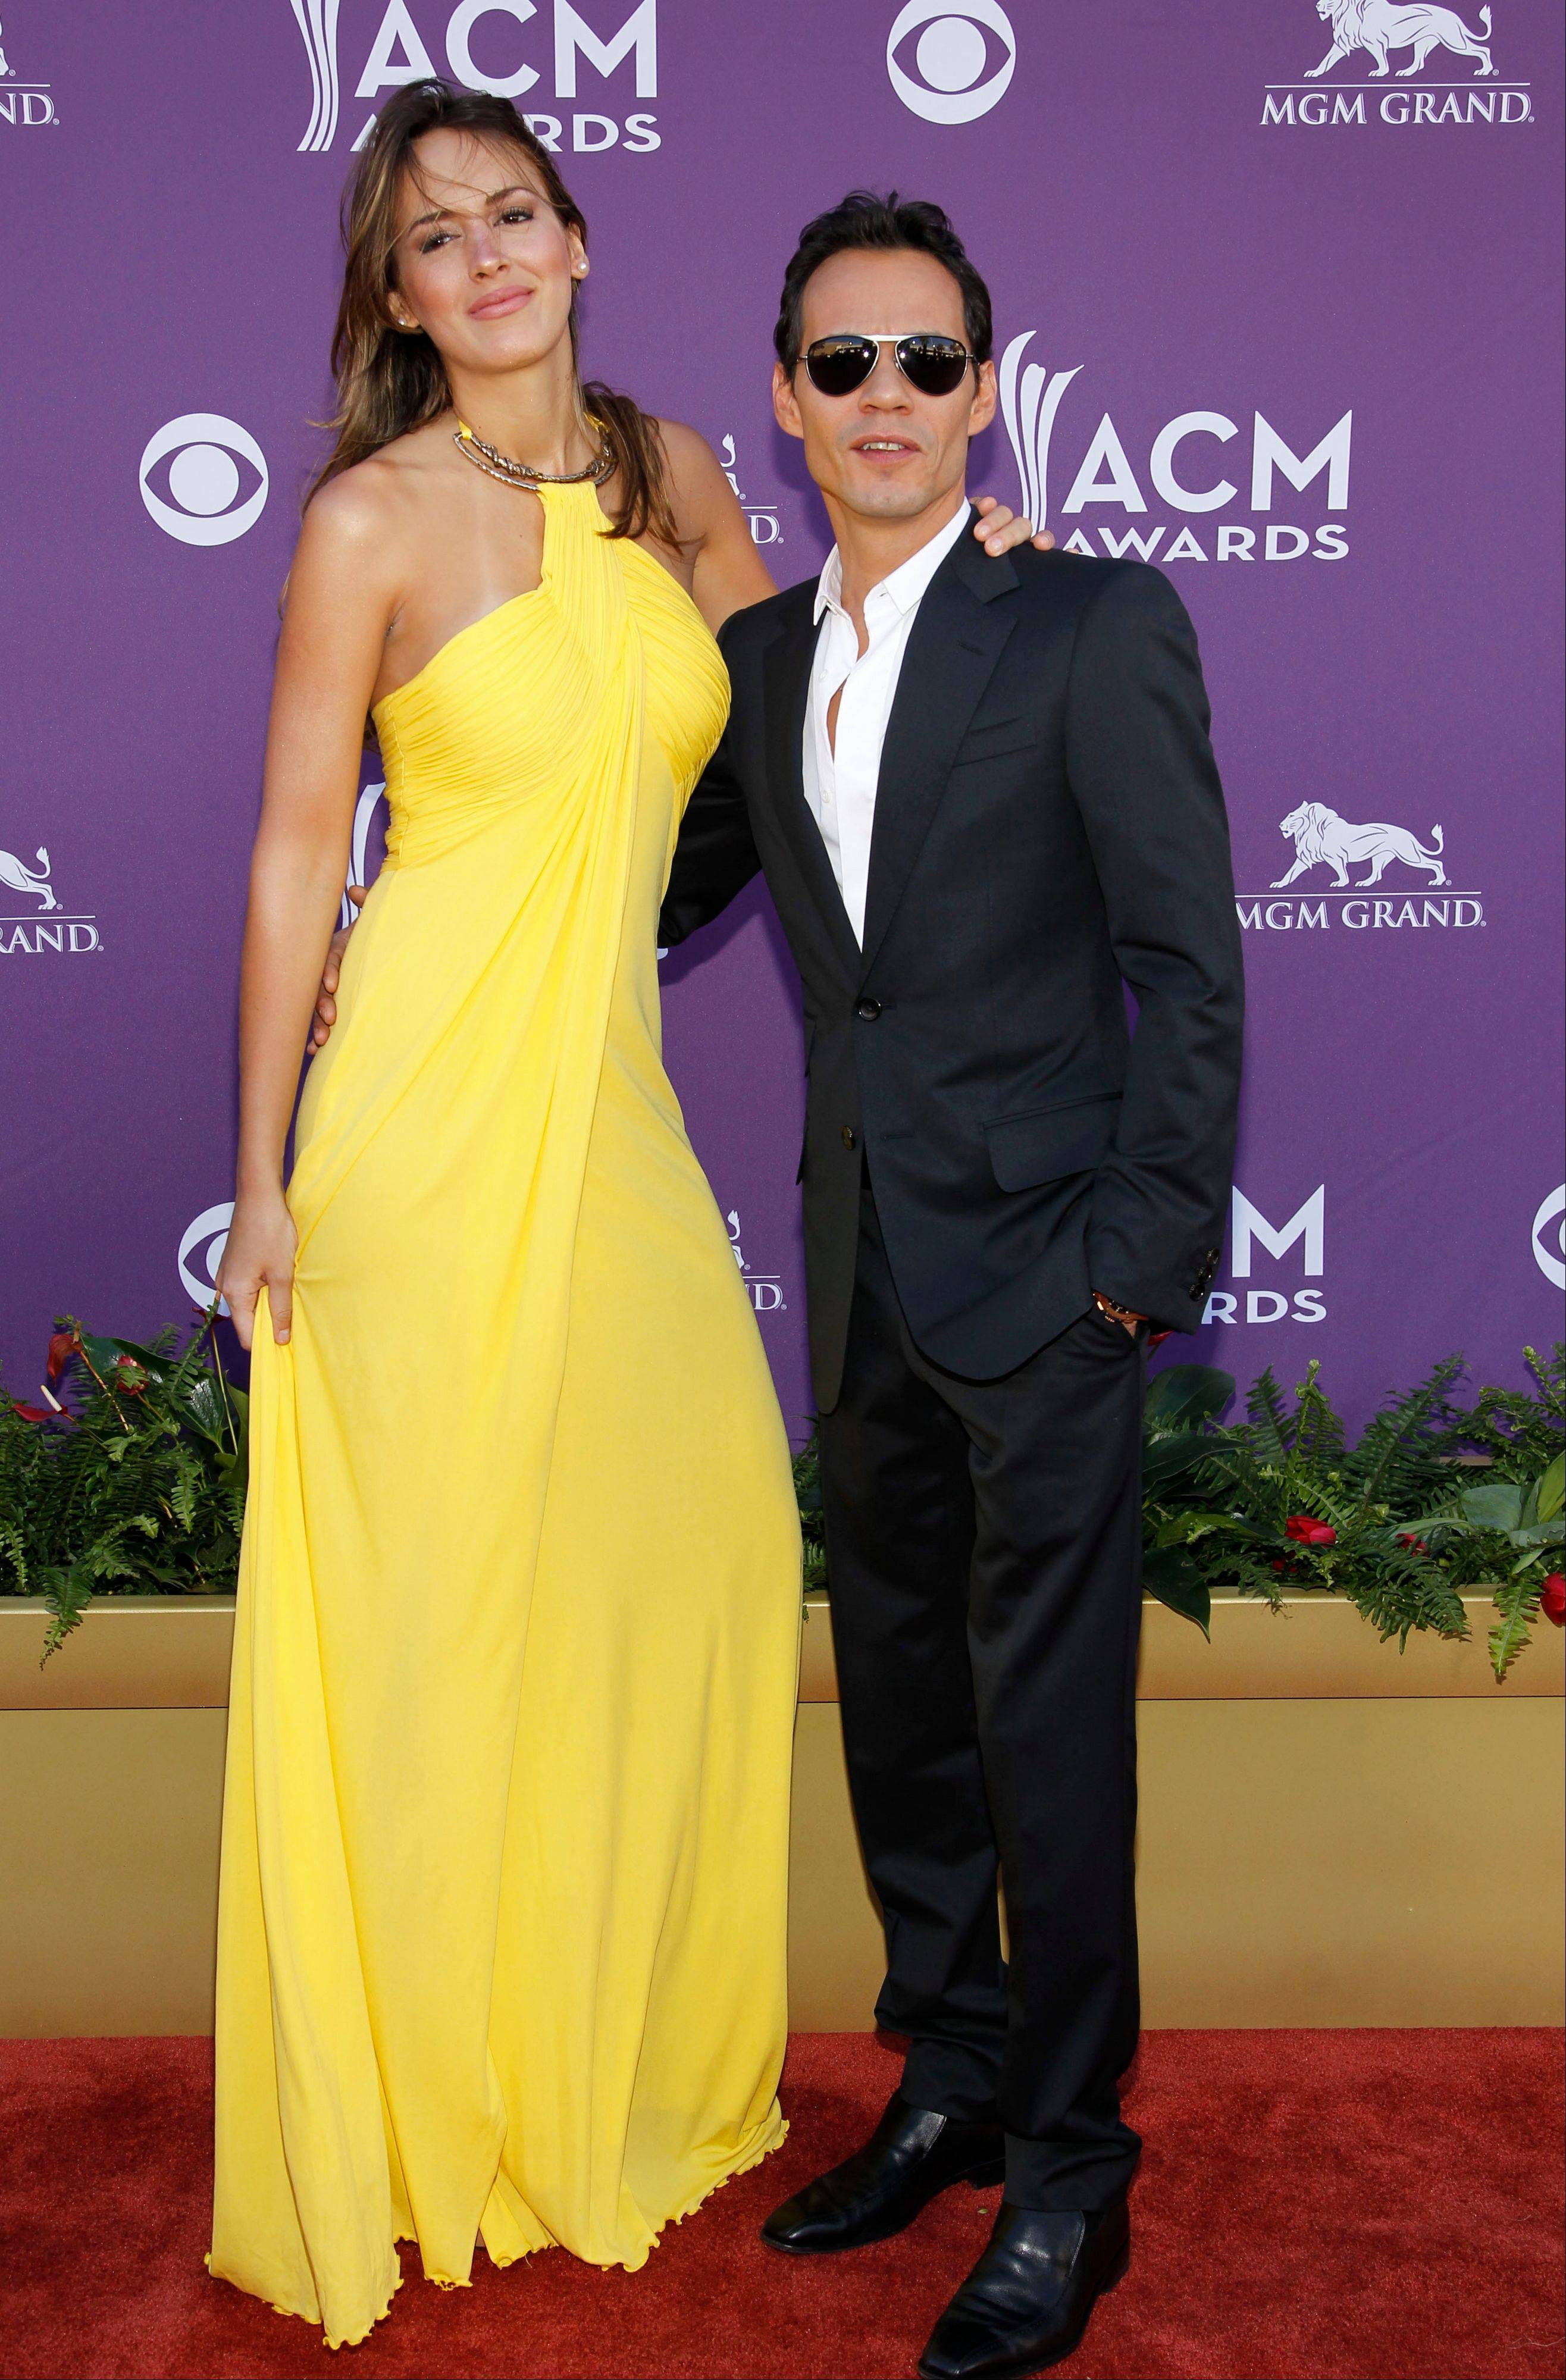 Marc Anthony, seen here with his date Shannon De Lima, was slated to present during the ceremony.